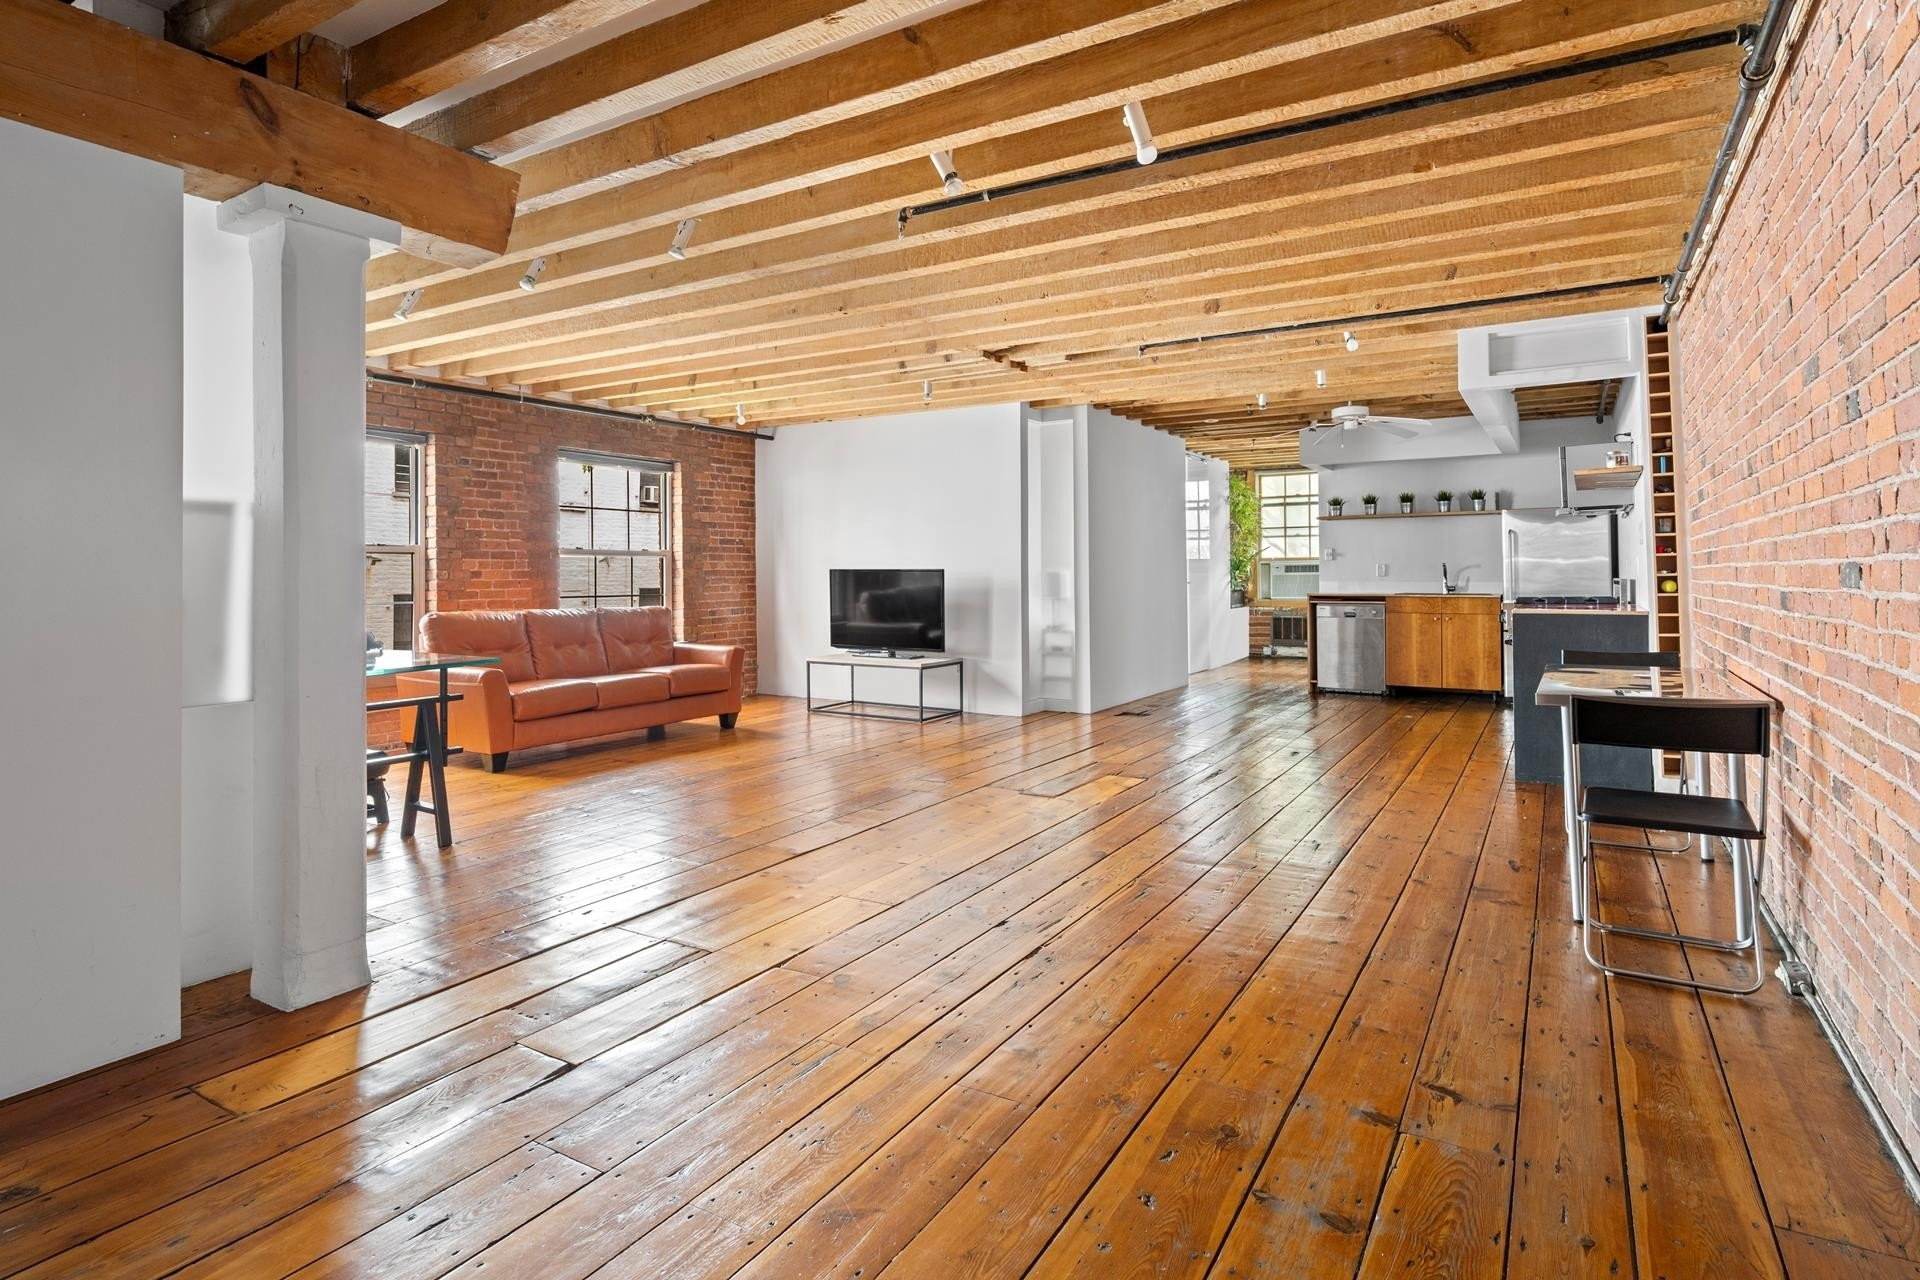 Co-op Properties for Sale at BUTTON FACTORY, 270 Water St, 4R South Street Seaport, New York, NY 10038